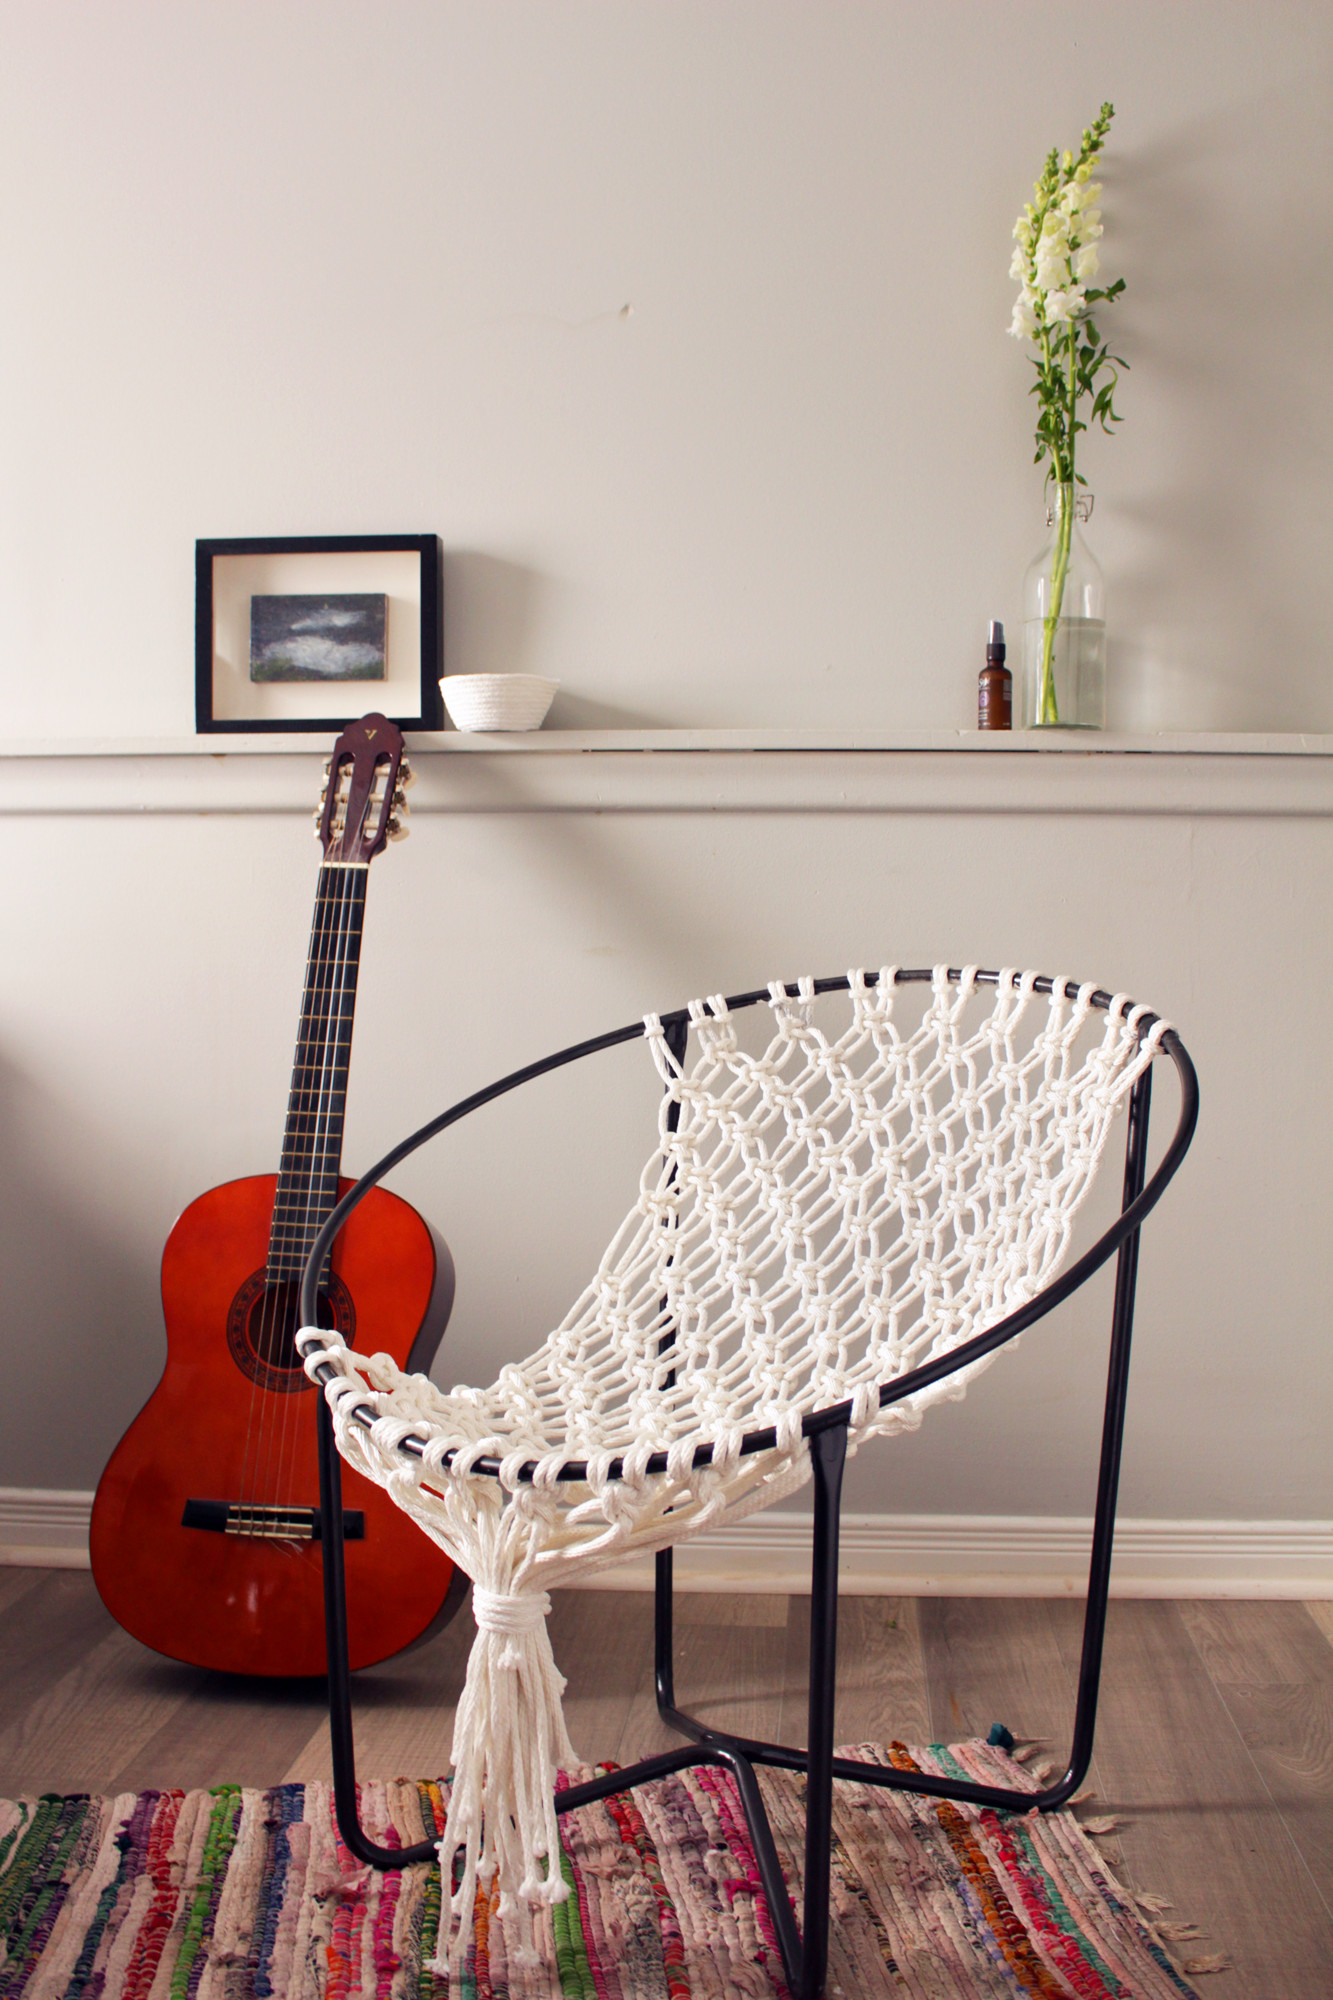 Best ideas about DIY Macrame Chair . Save or Pin DIY Macrame Hammock Chair Now.